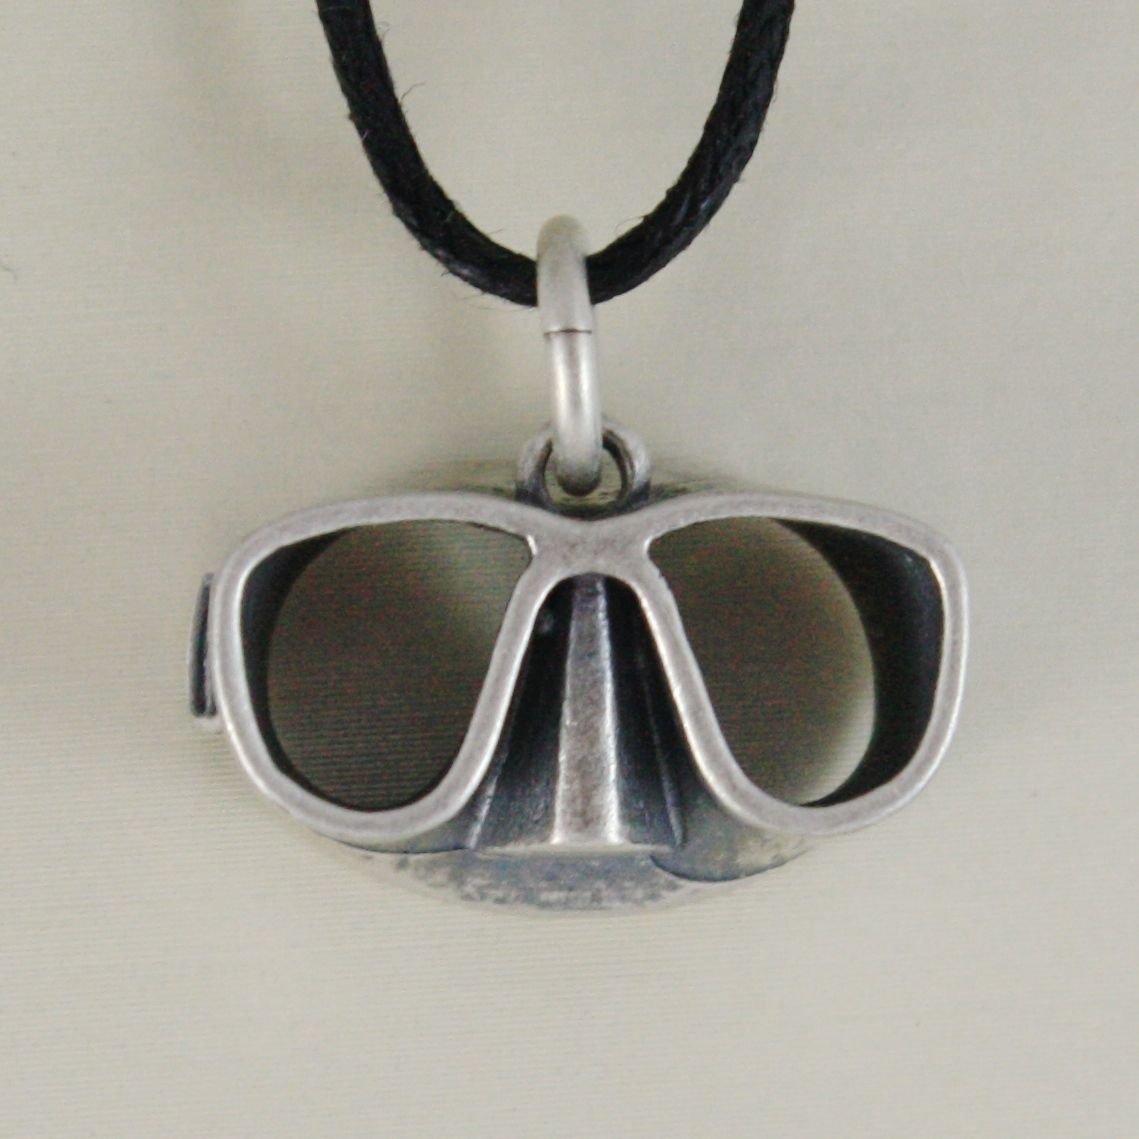 SOLID 925 STERLING SILVER SNORKELING MASK PENDANT BURNISHED SATIN MADE IN ITALY